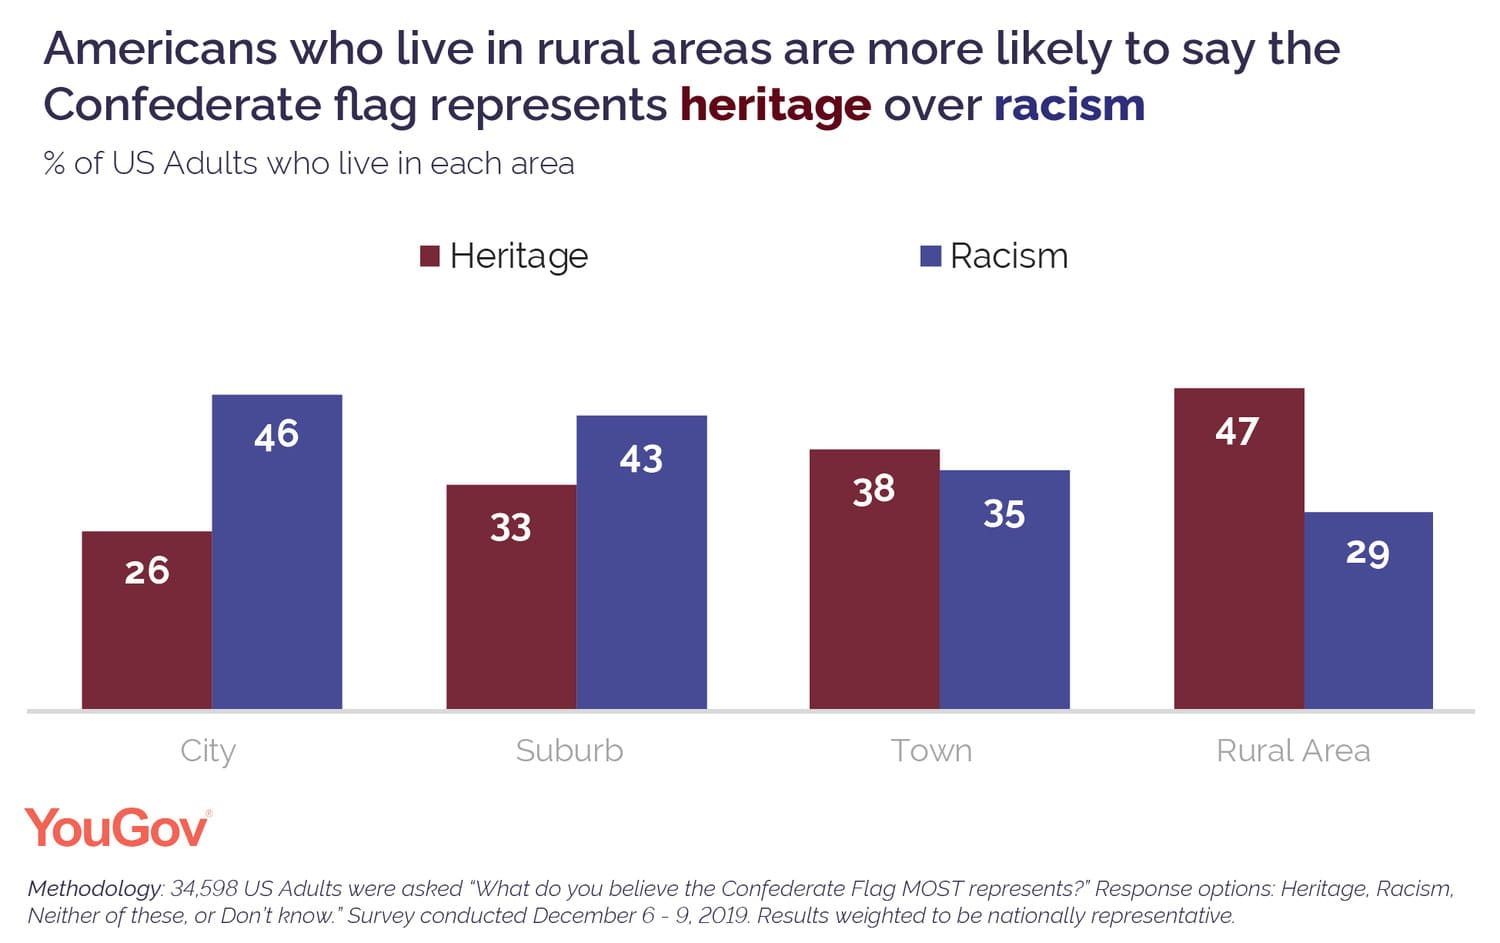 Americans who live in rural areas are more likely to say the Confederate flag represents heritage over racism